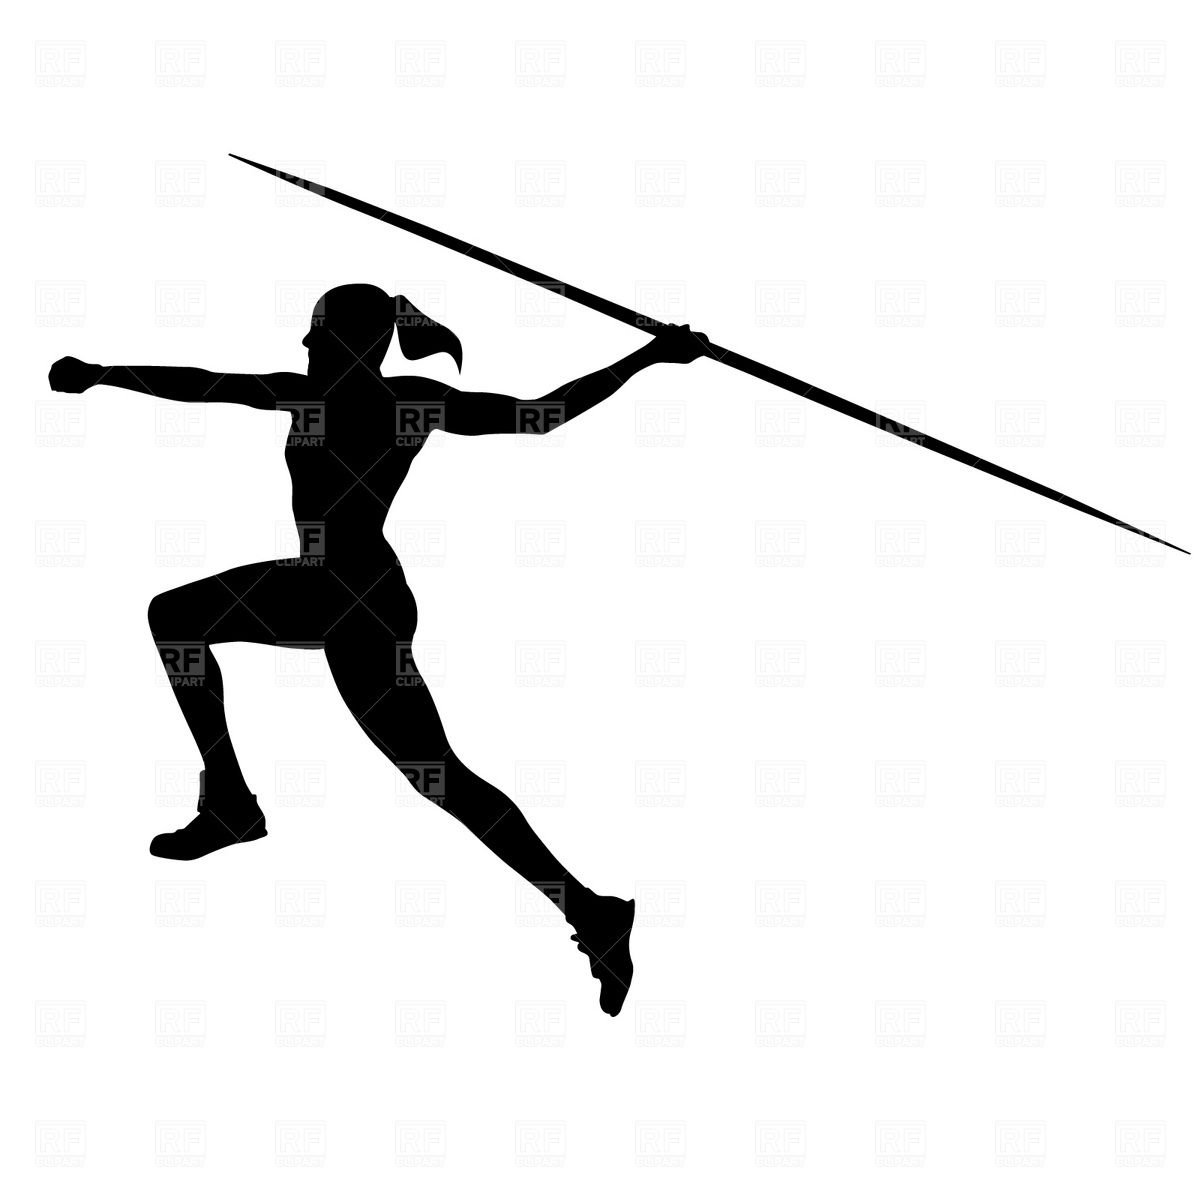 medium resolution of woman throwing javelin clipart catalog sport and leisure women s javelin download